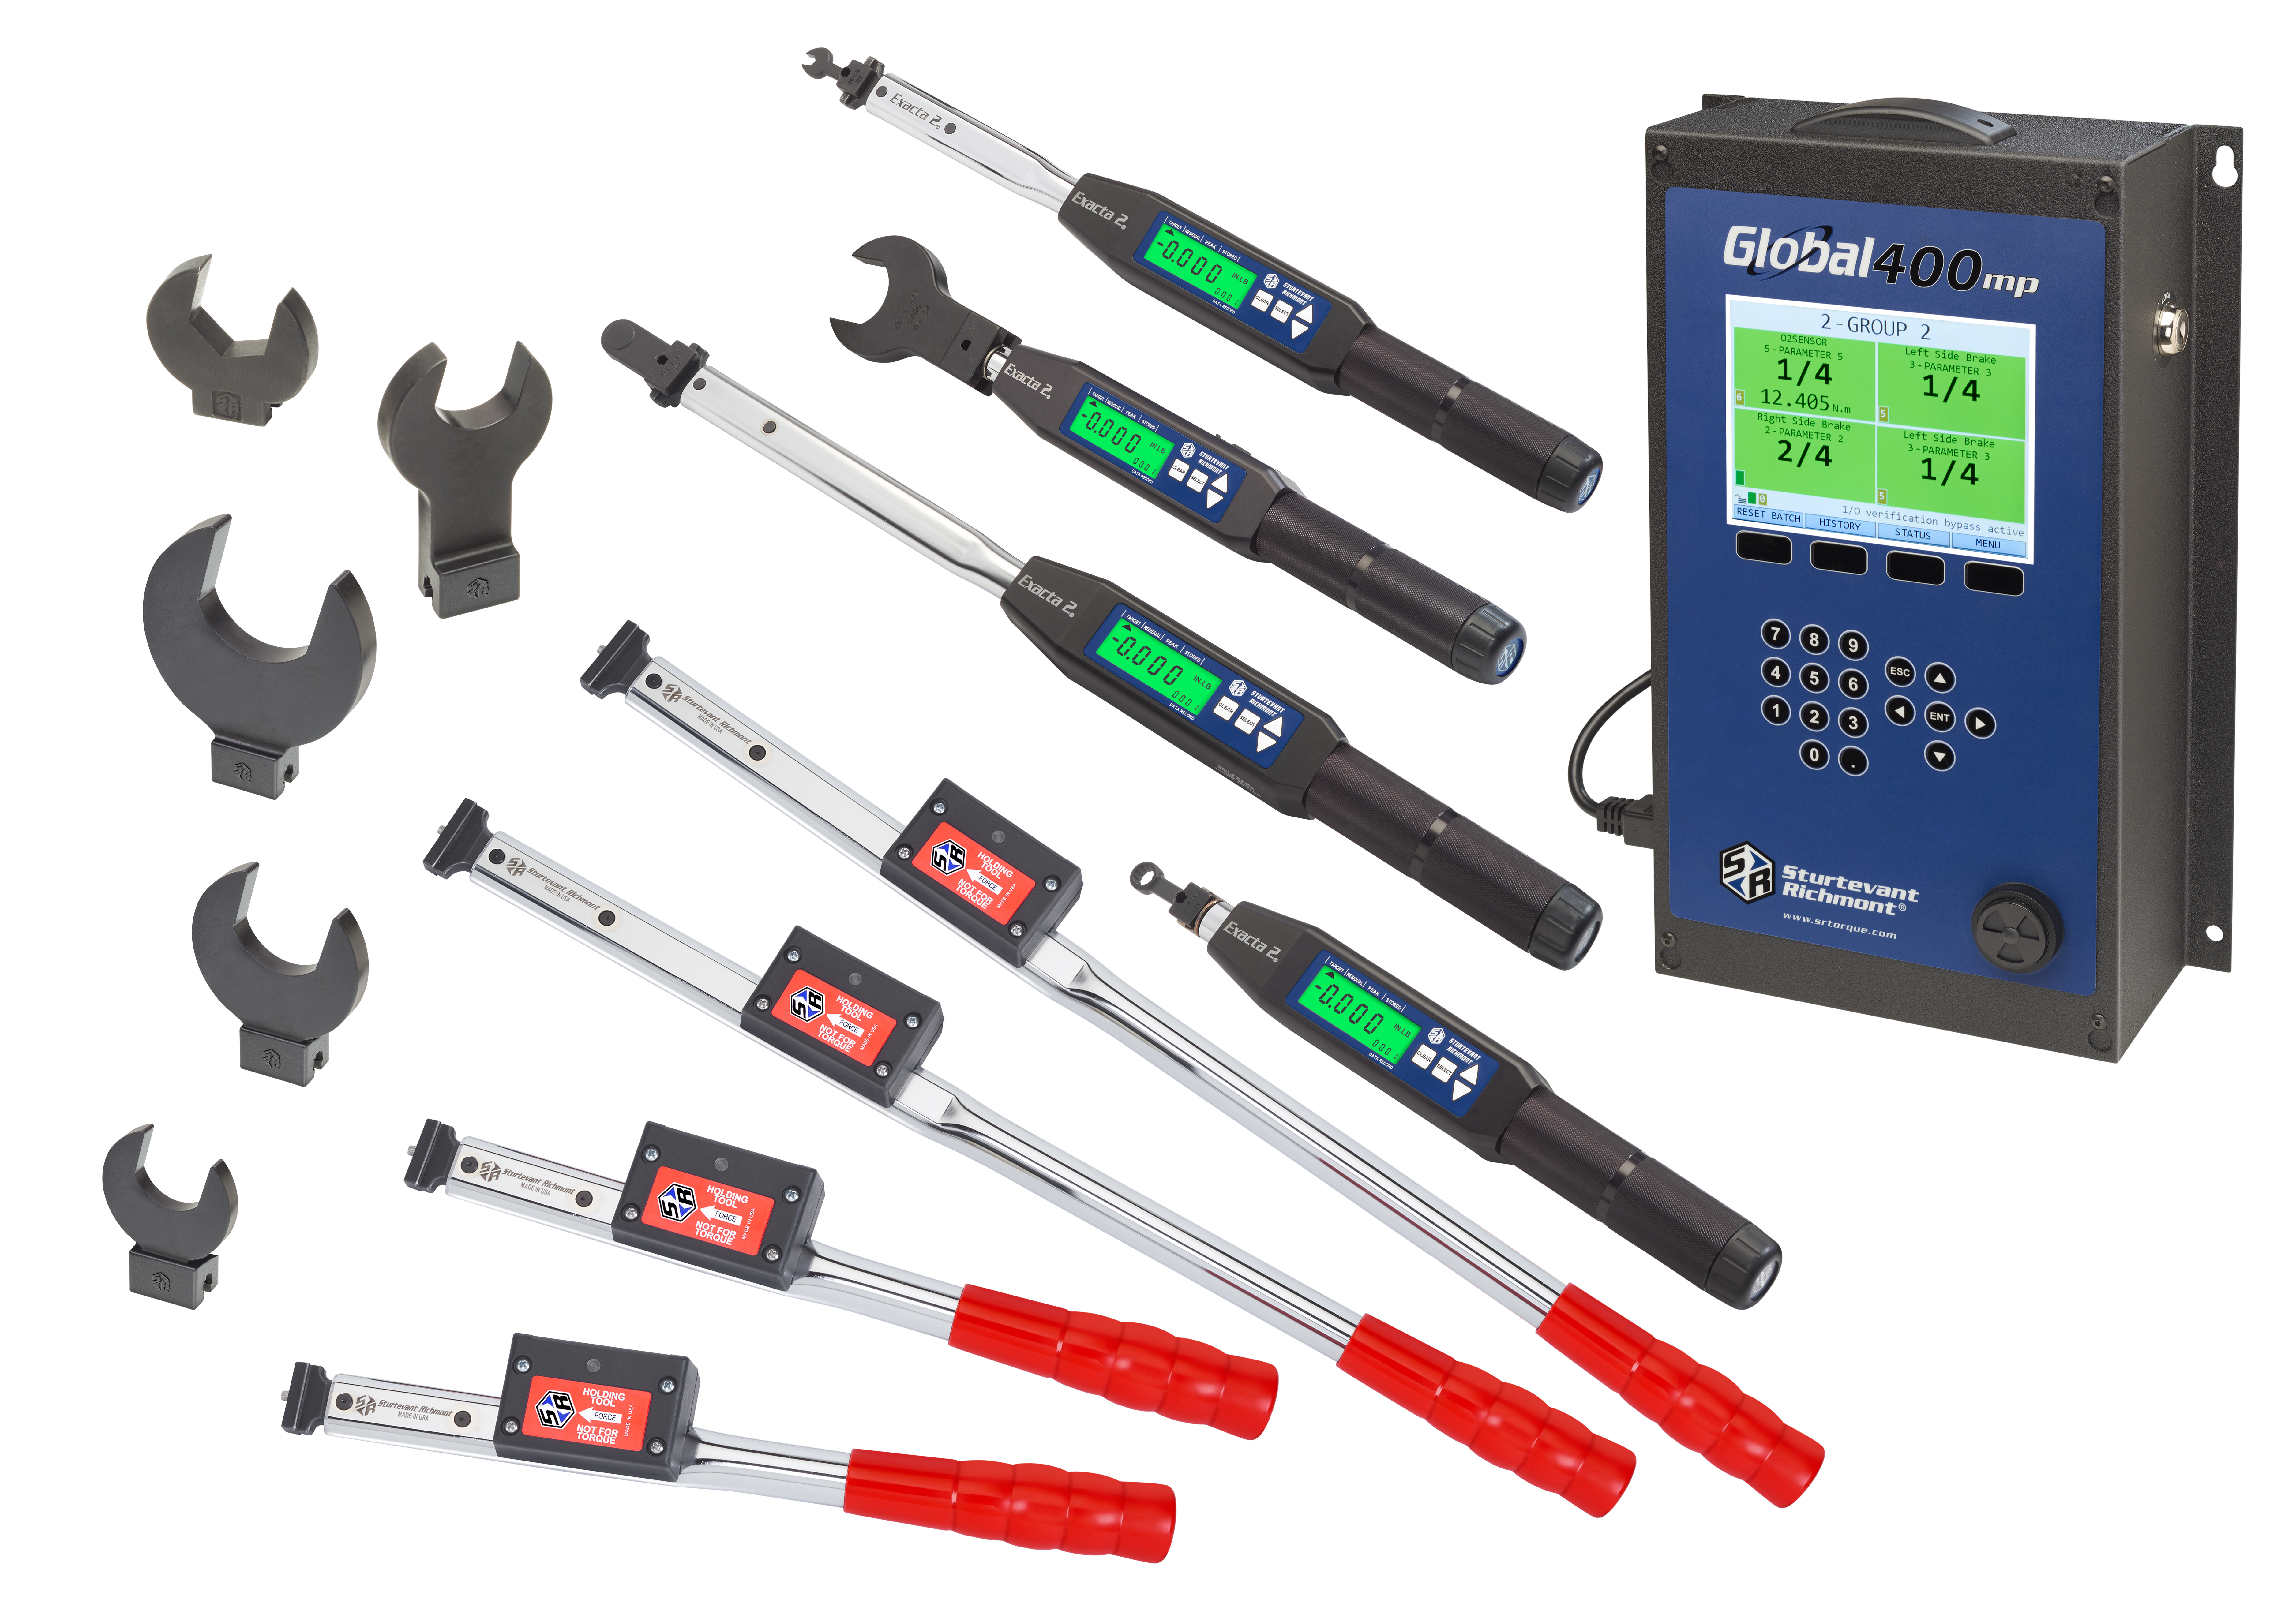 Digital torque and angle wrench, Global 400 and the new holding wrenches